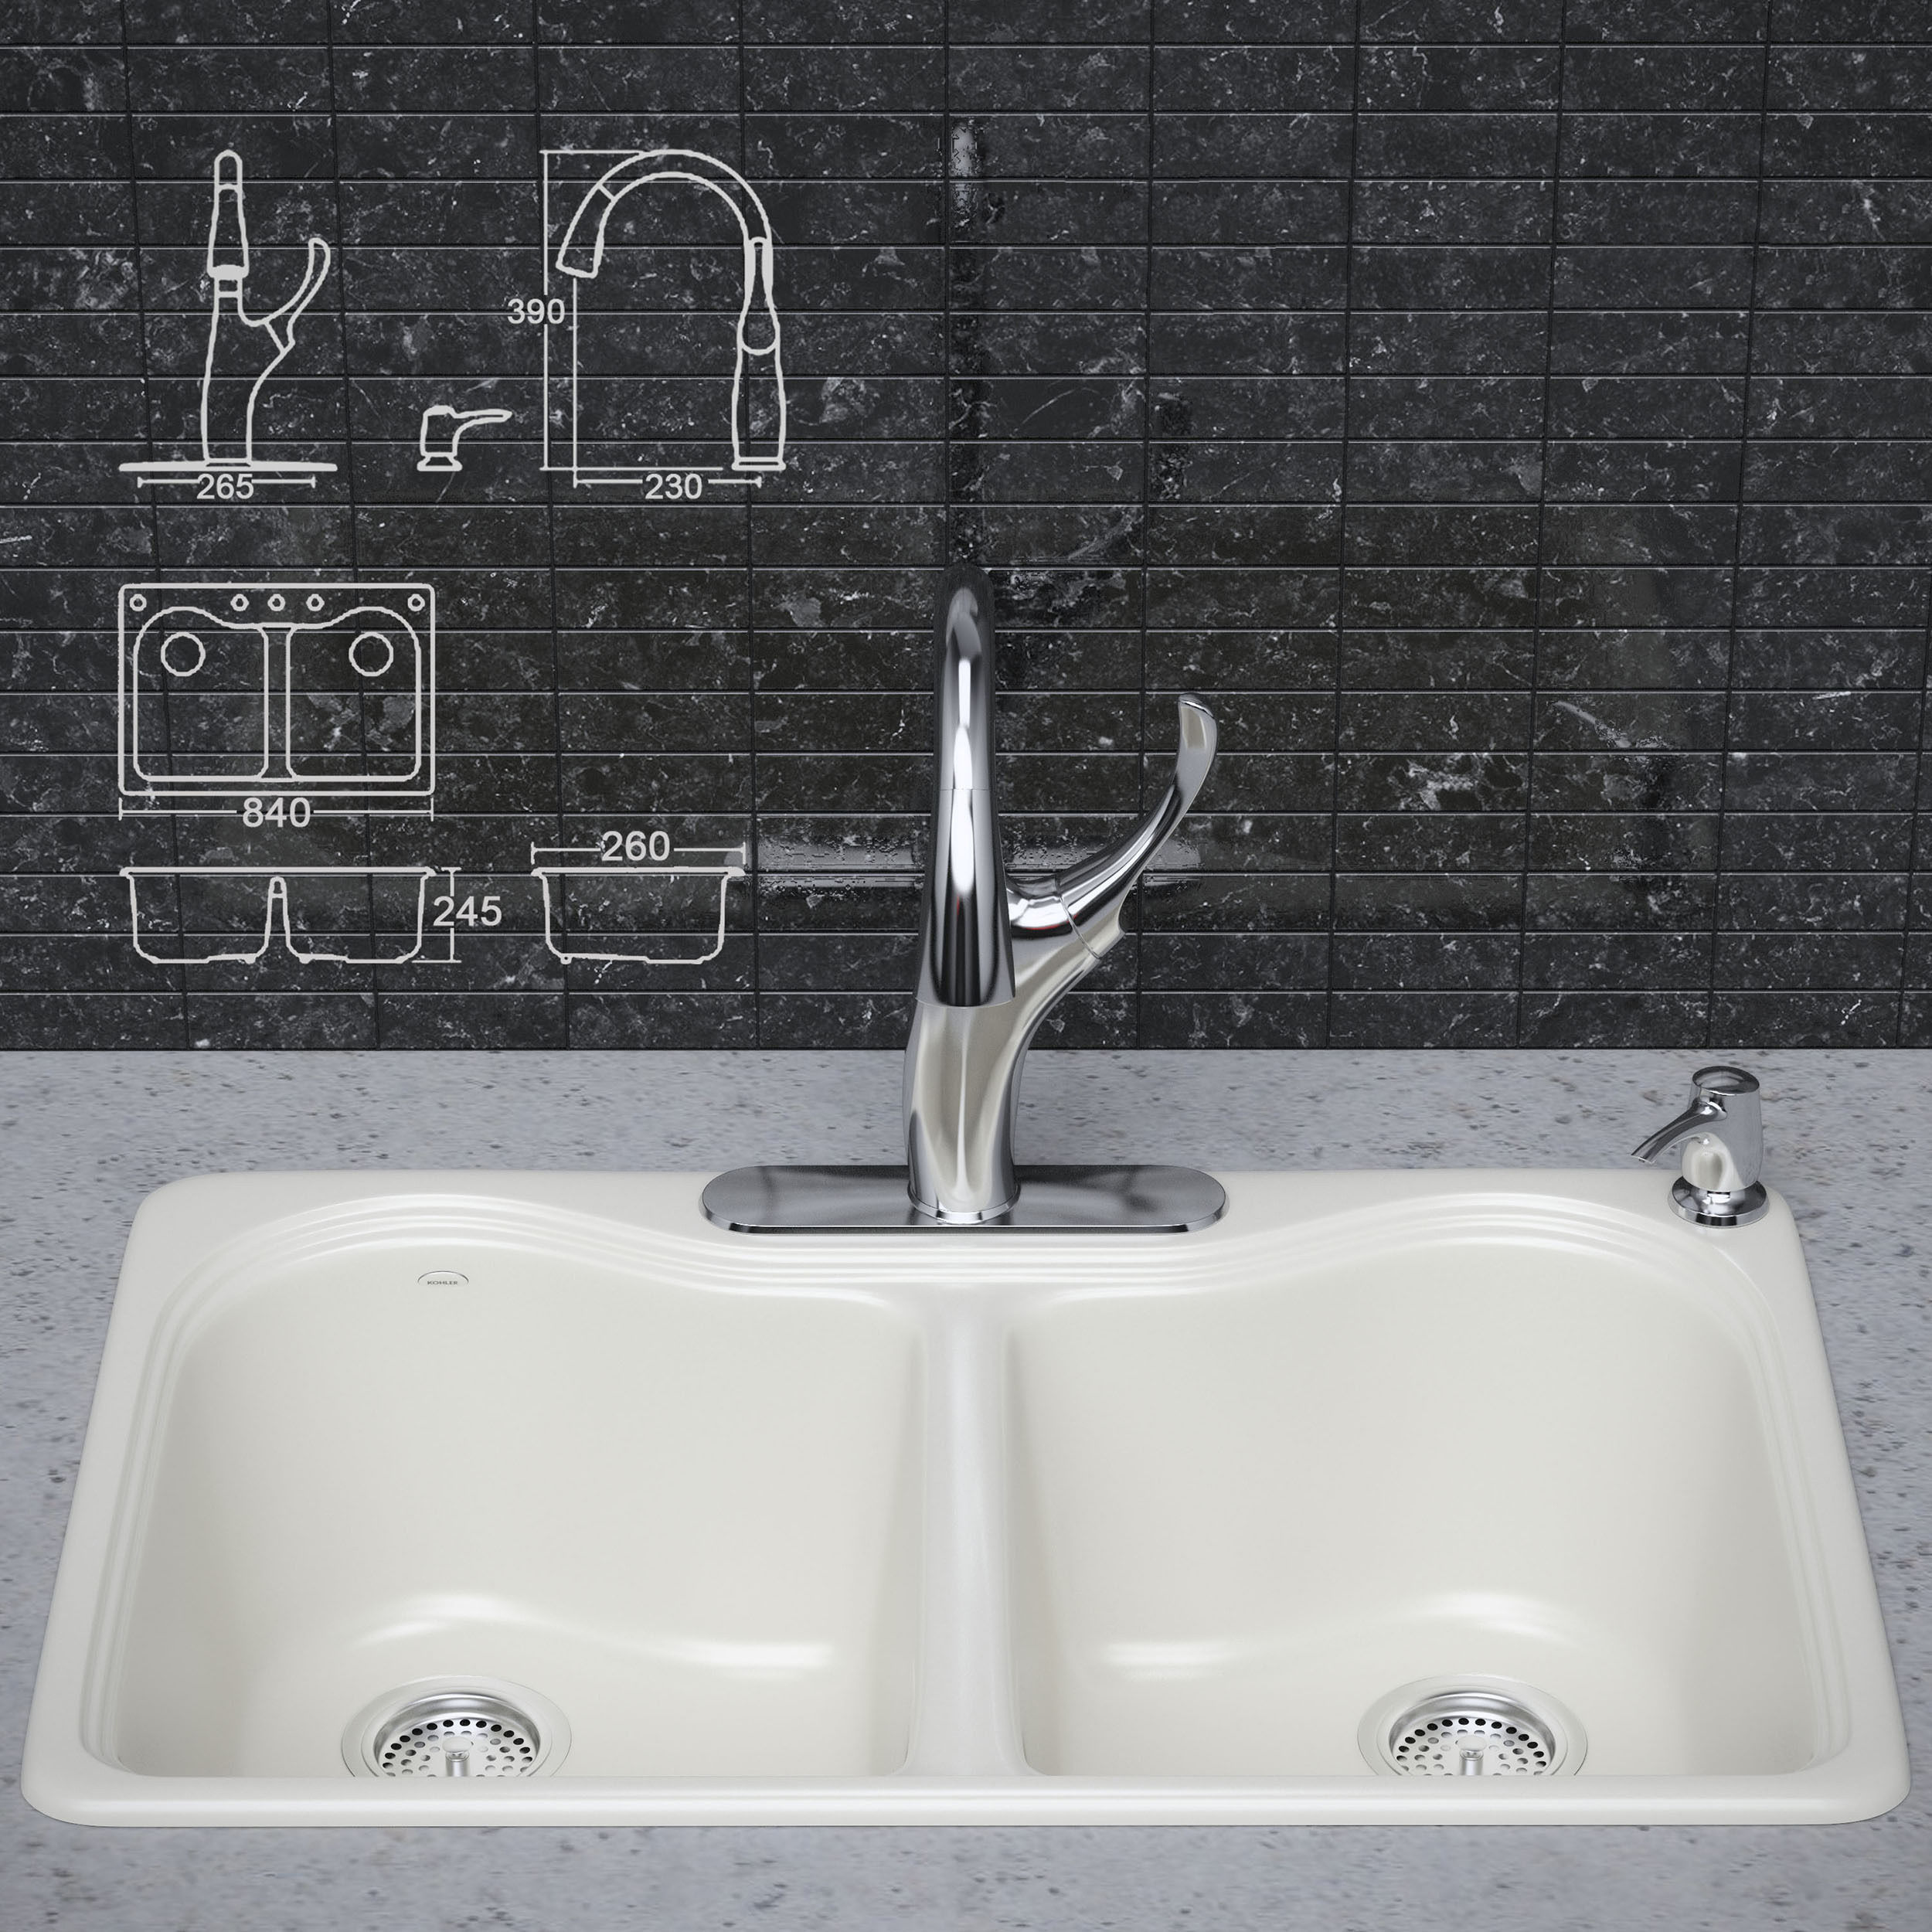 Kitchen faucet and sink KOHLER 3D Model MAX MAT CGTrader.com